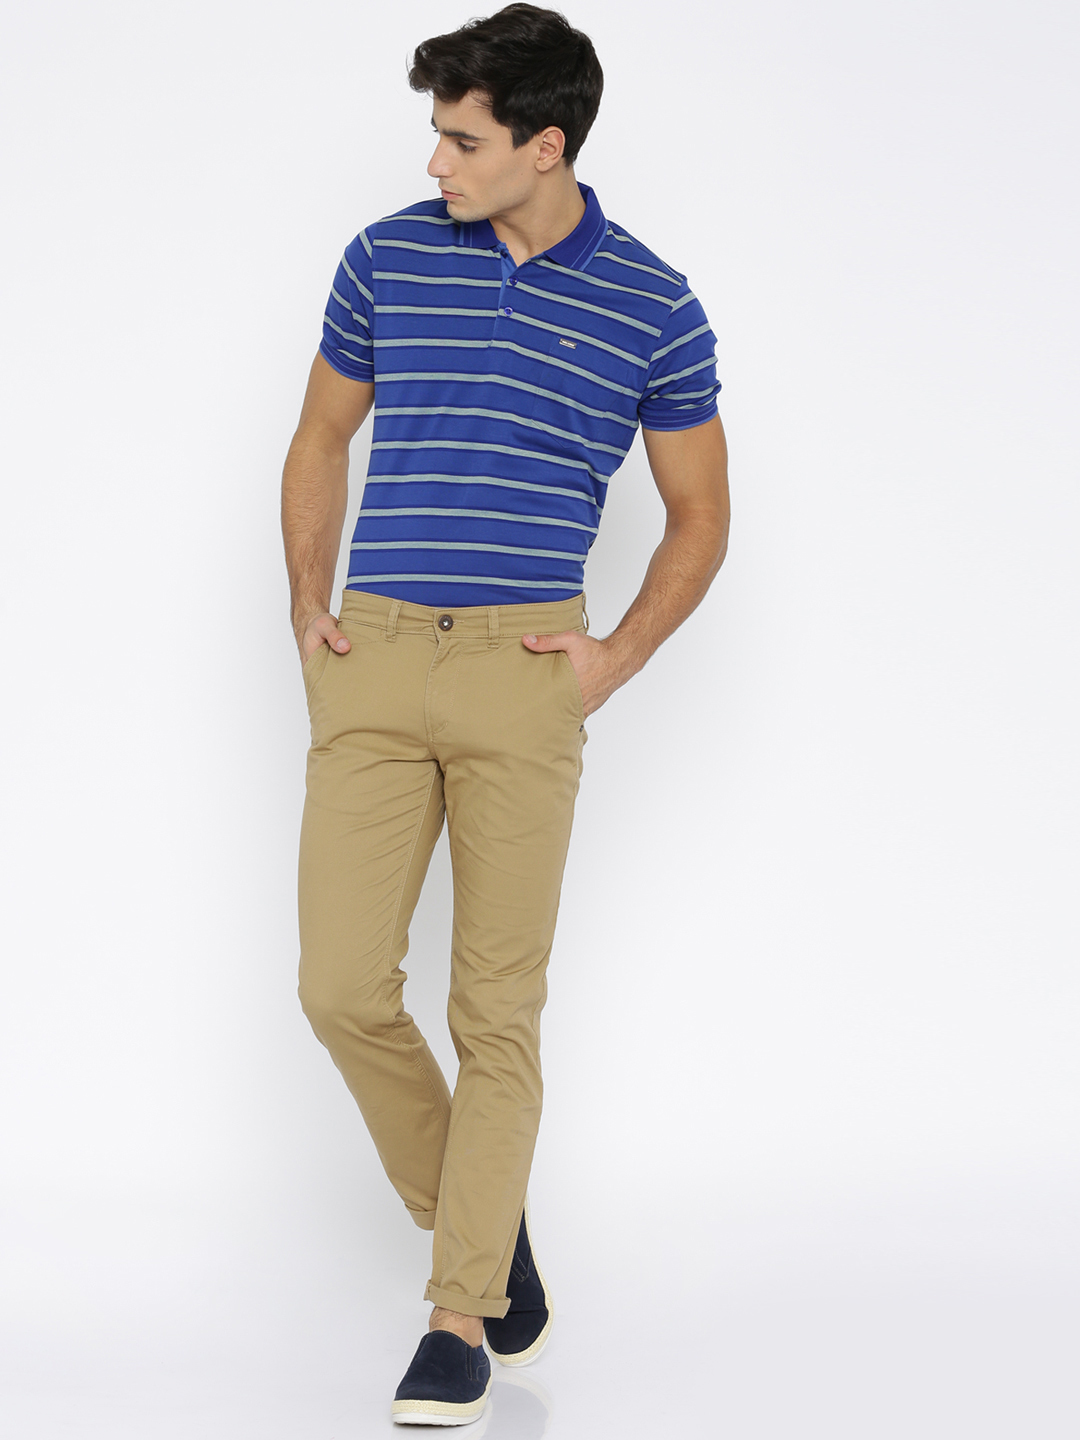 What Color Shoes With Khaki Pants And Navy Blue Shirt